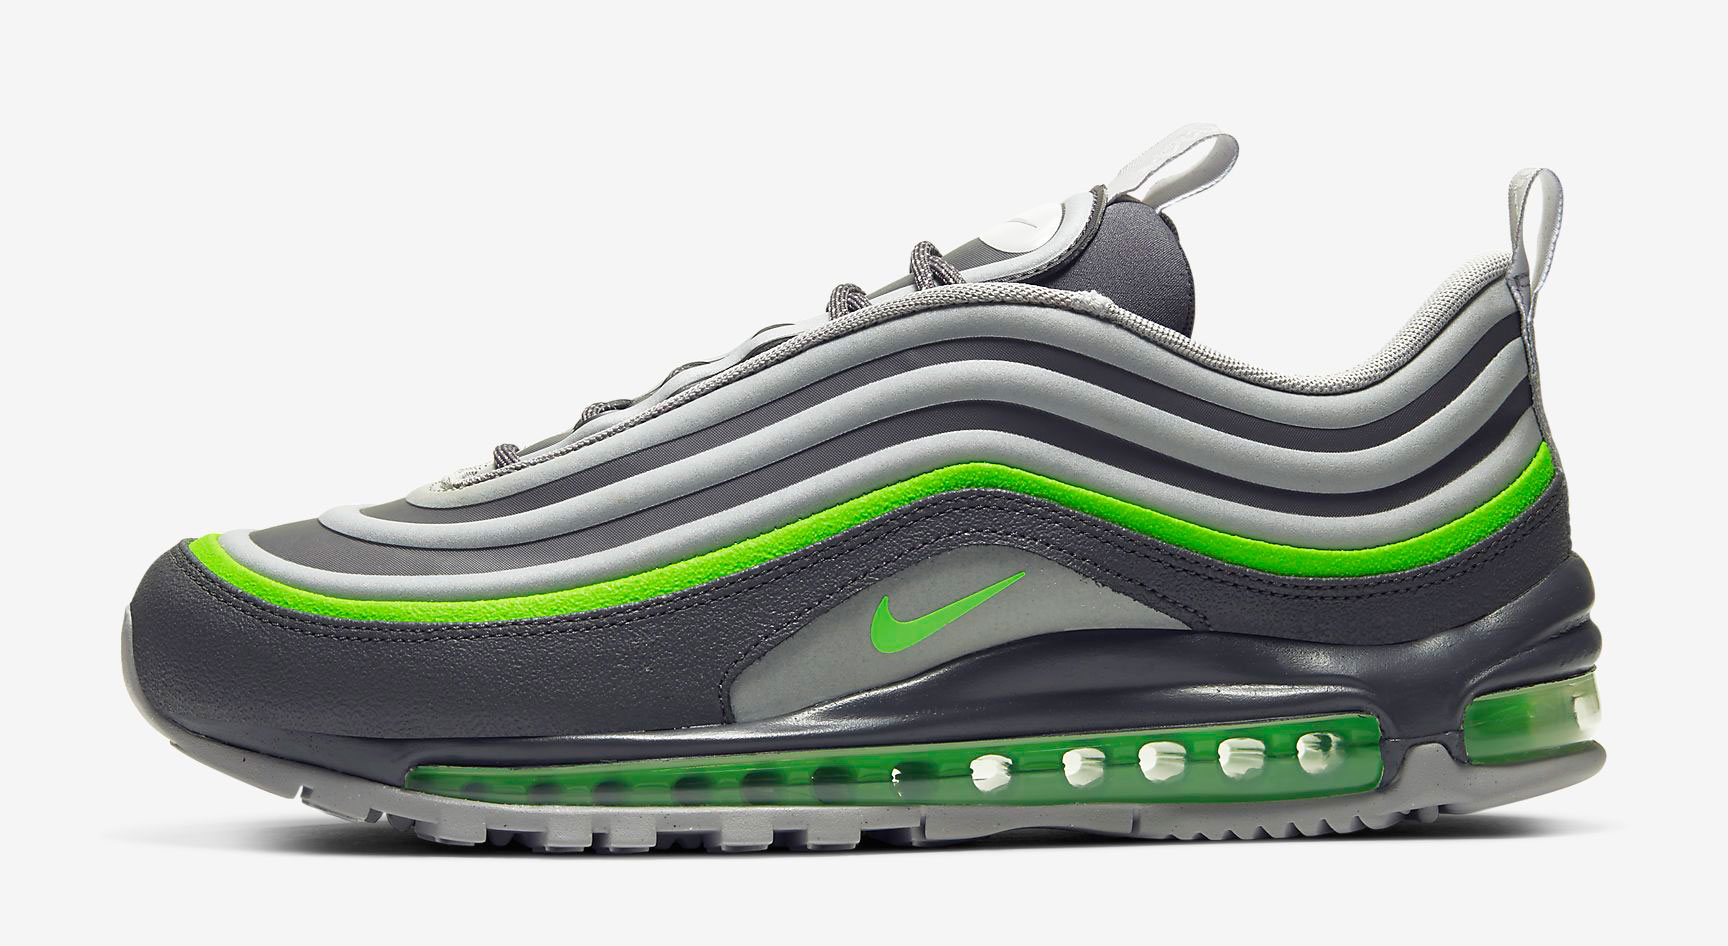 nike-air-max-97-utility-thunder-grey-electric-green-release-date